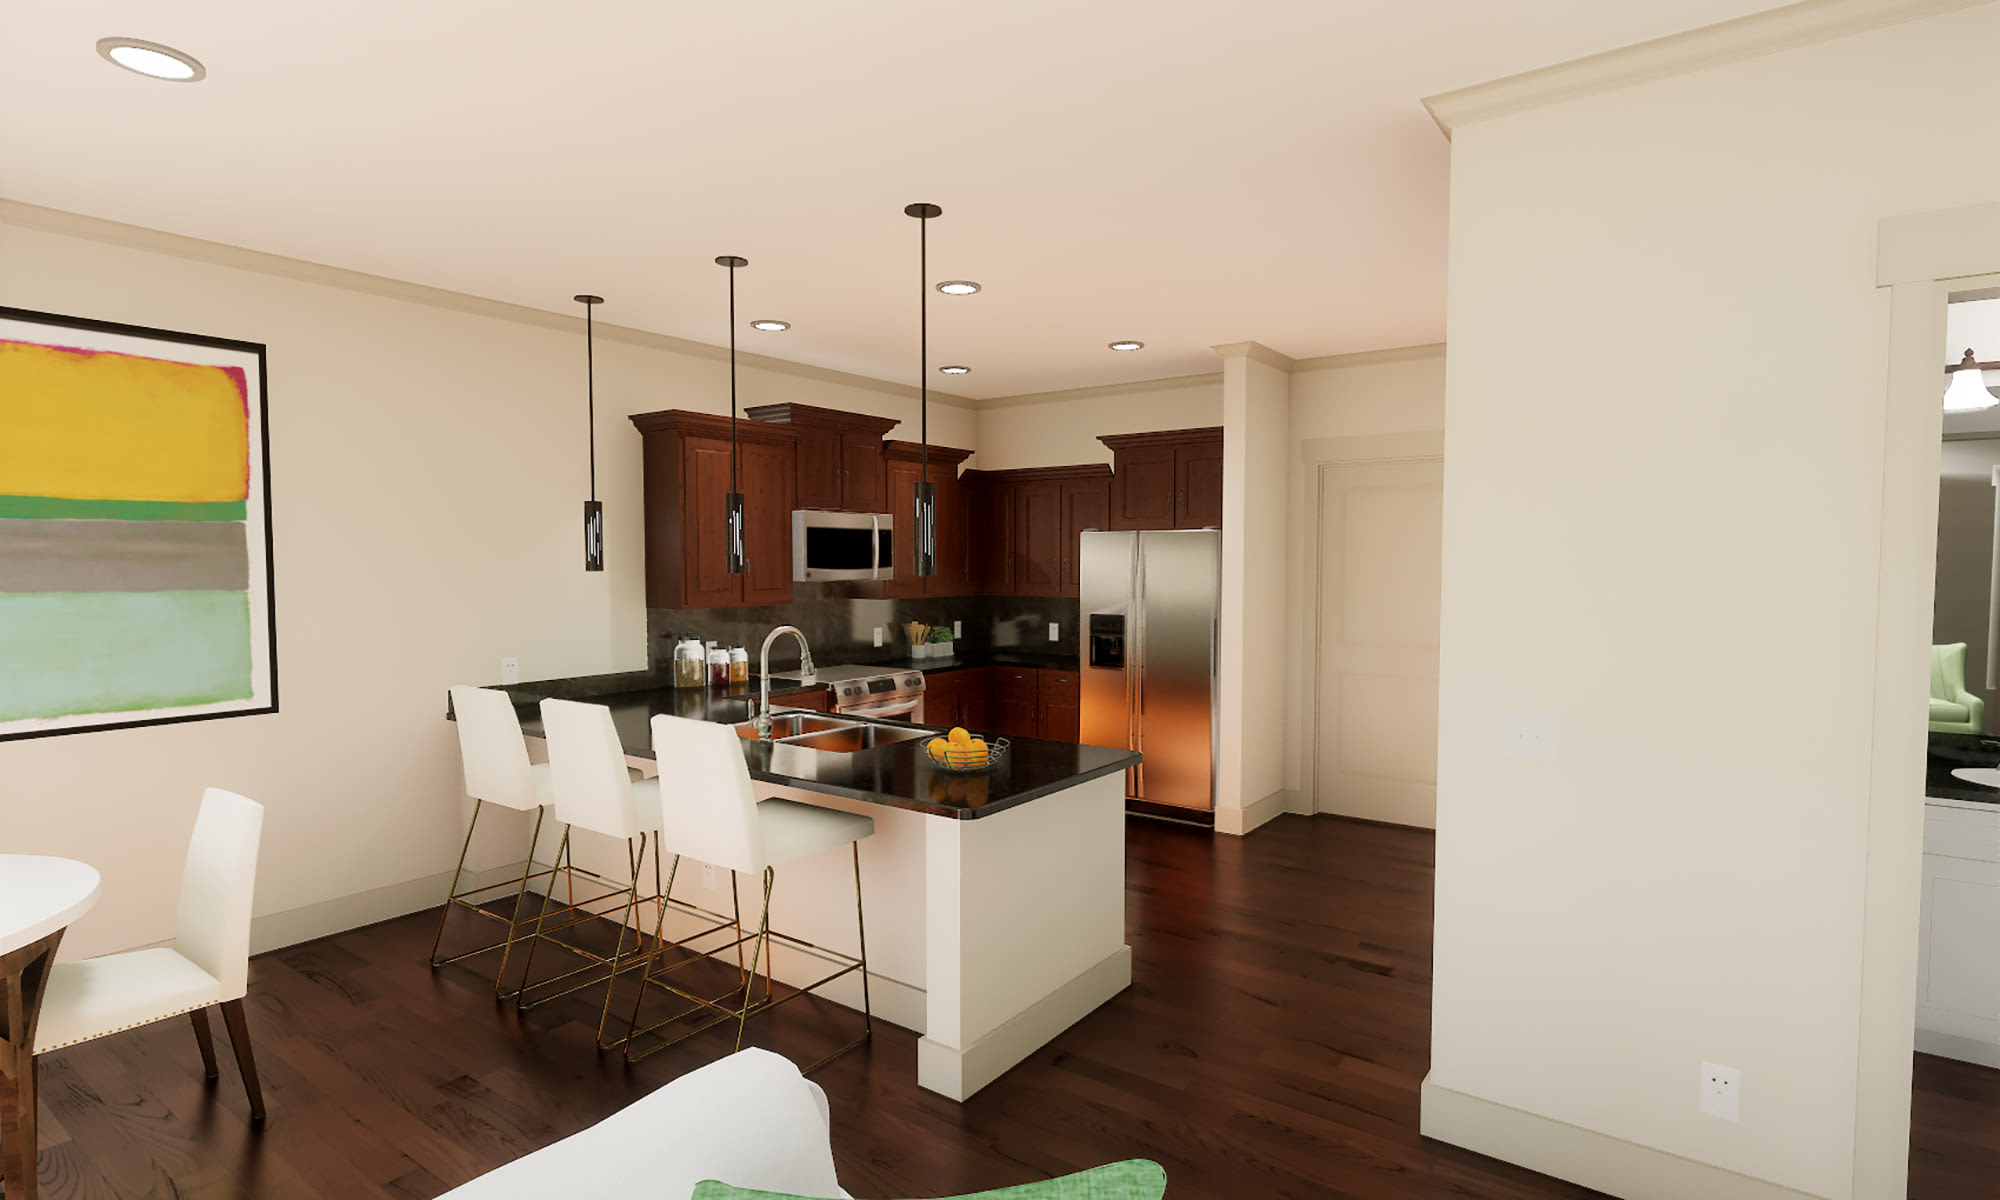 Spacious and well-designed floor plan at The Fairways of Ironhorse in Leawood